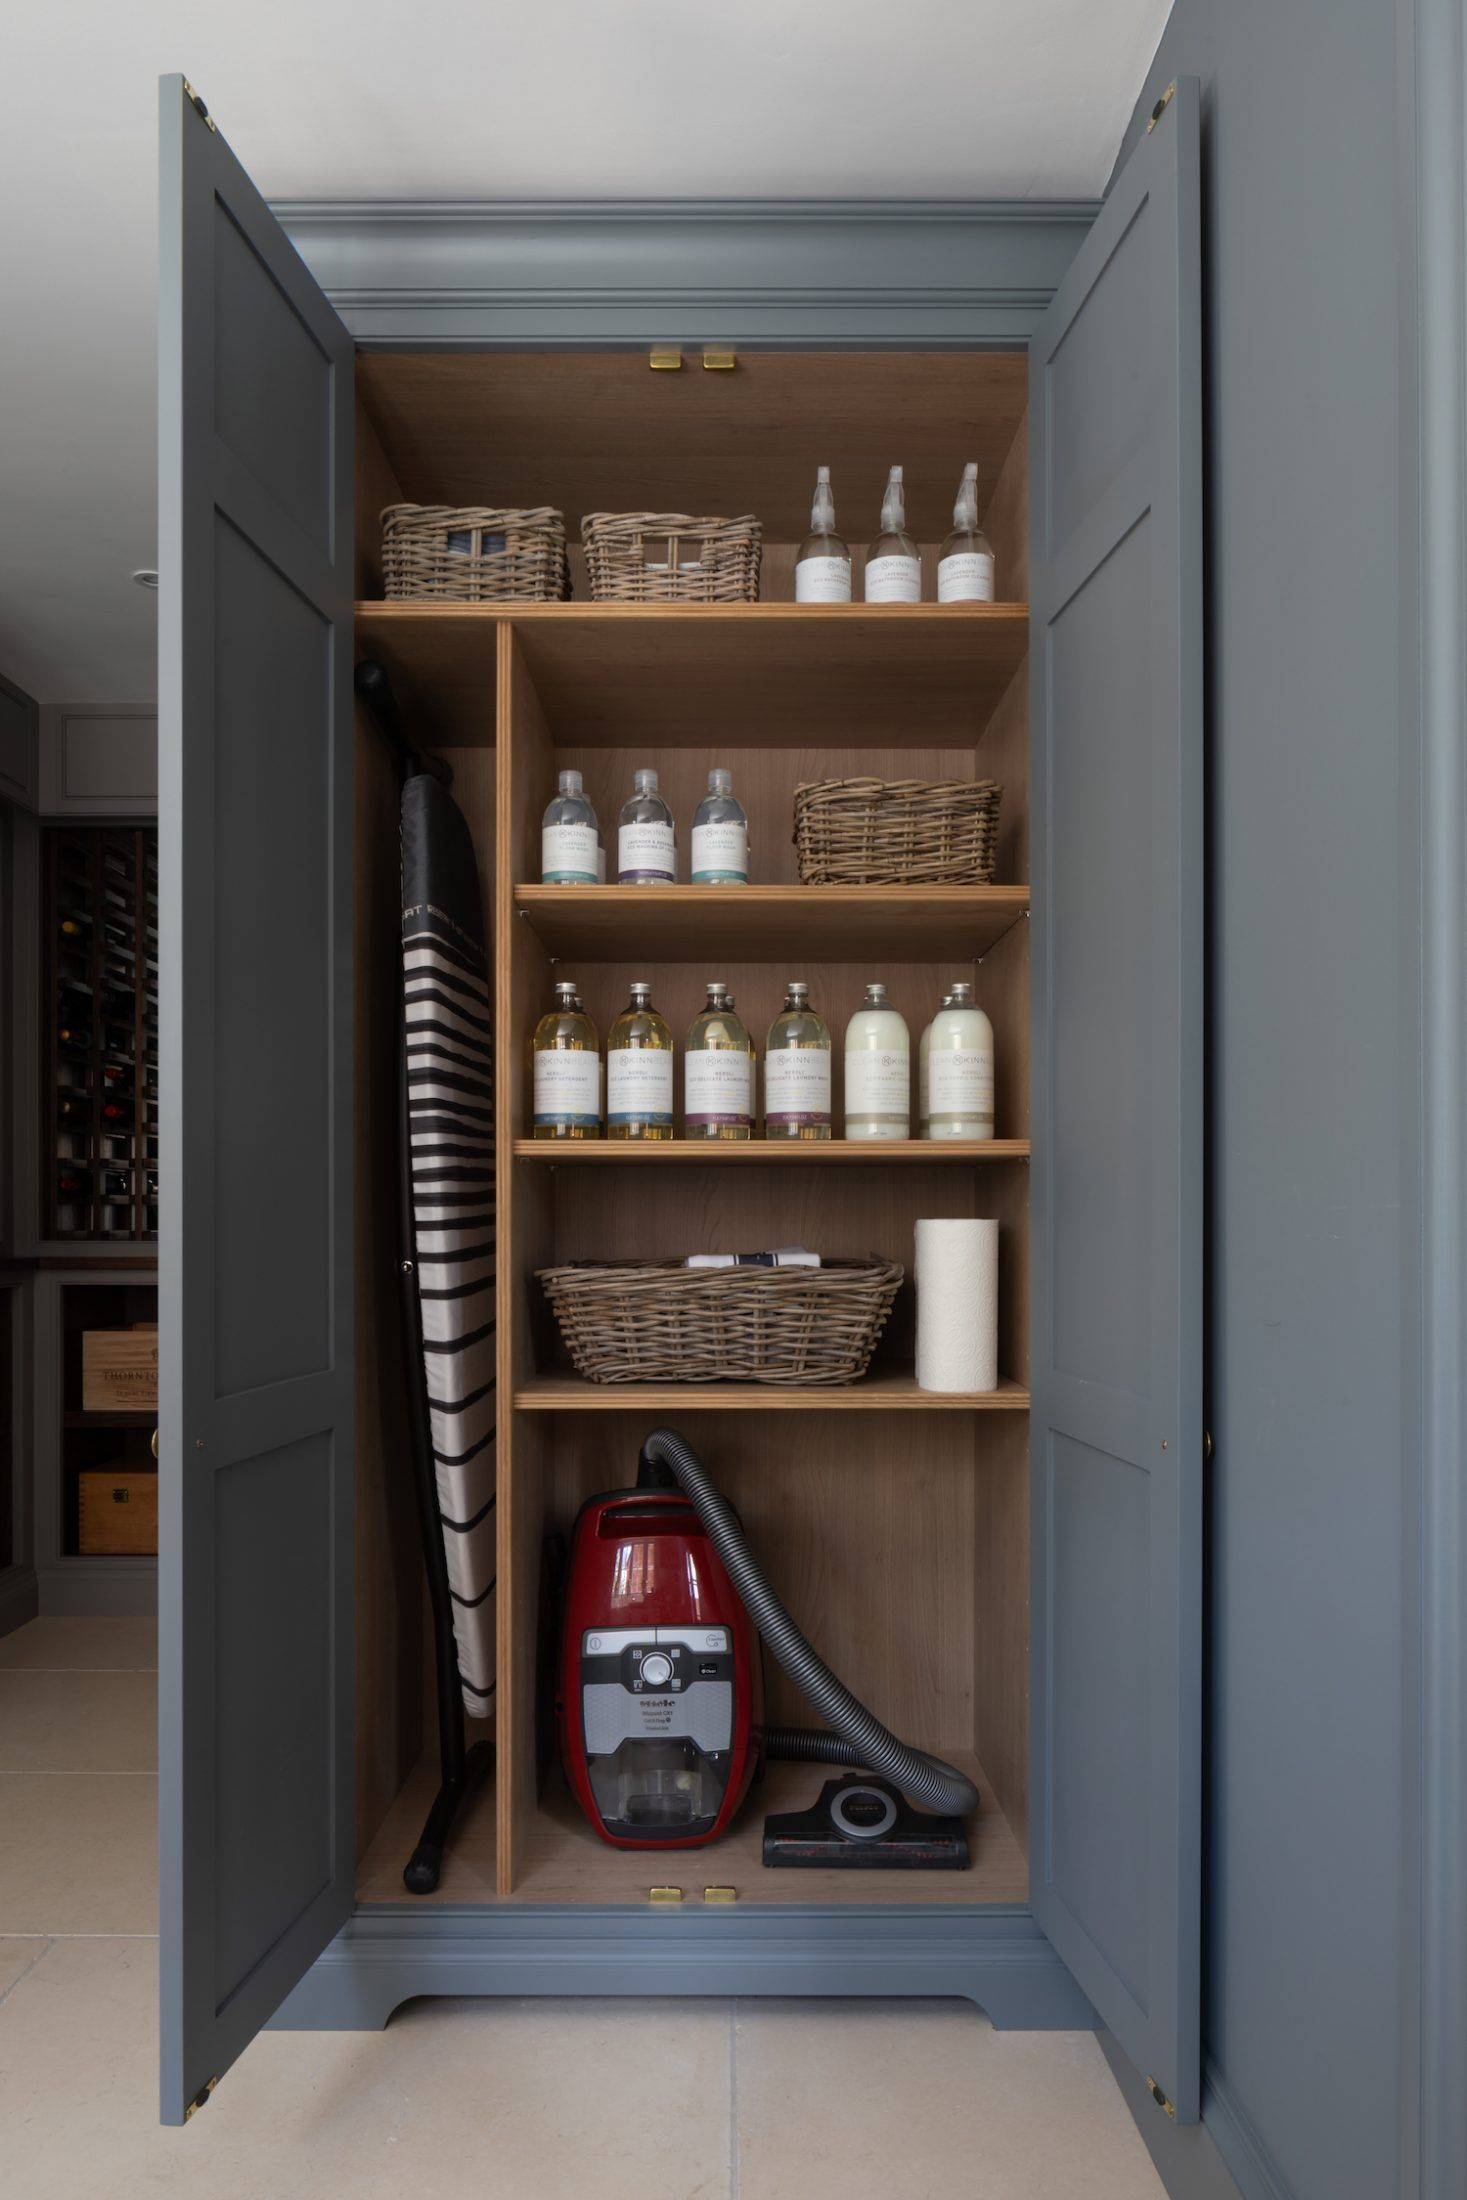 Photo of * Neu * Spenlow Utility Room im HM Showroom in Felsted, Essex – Humphrey Munso …